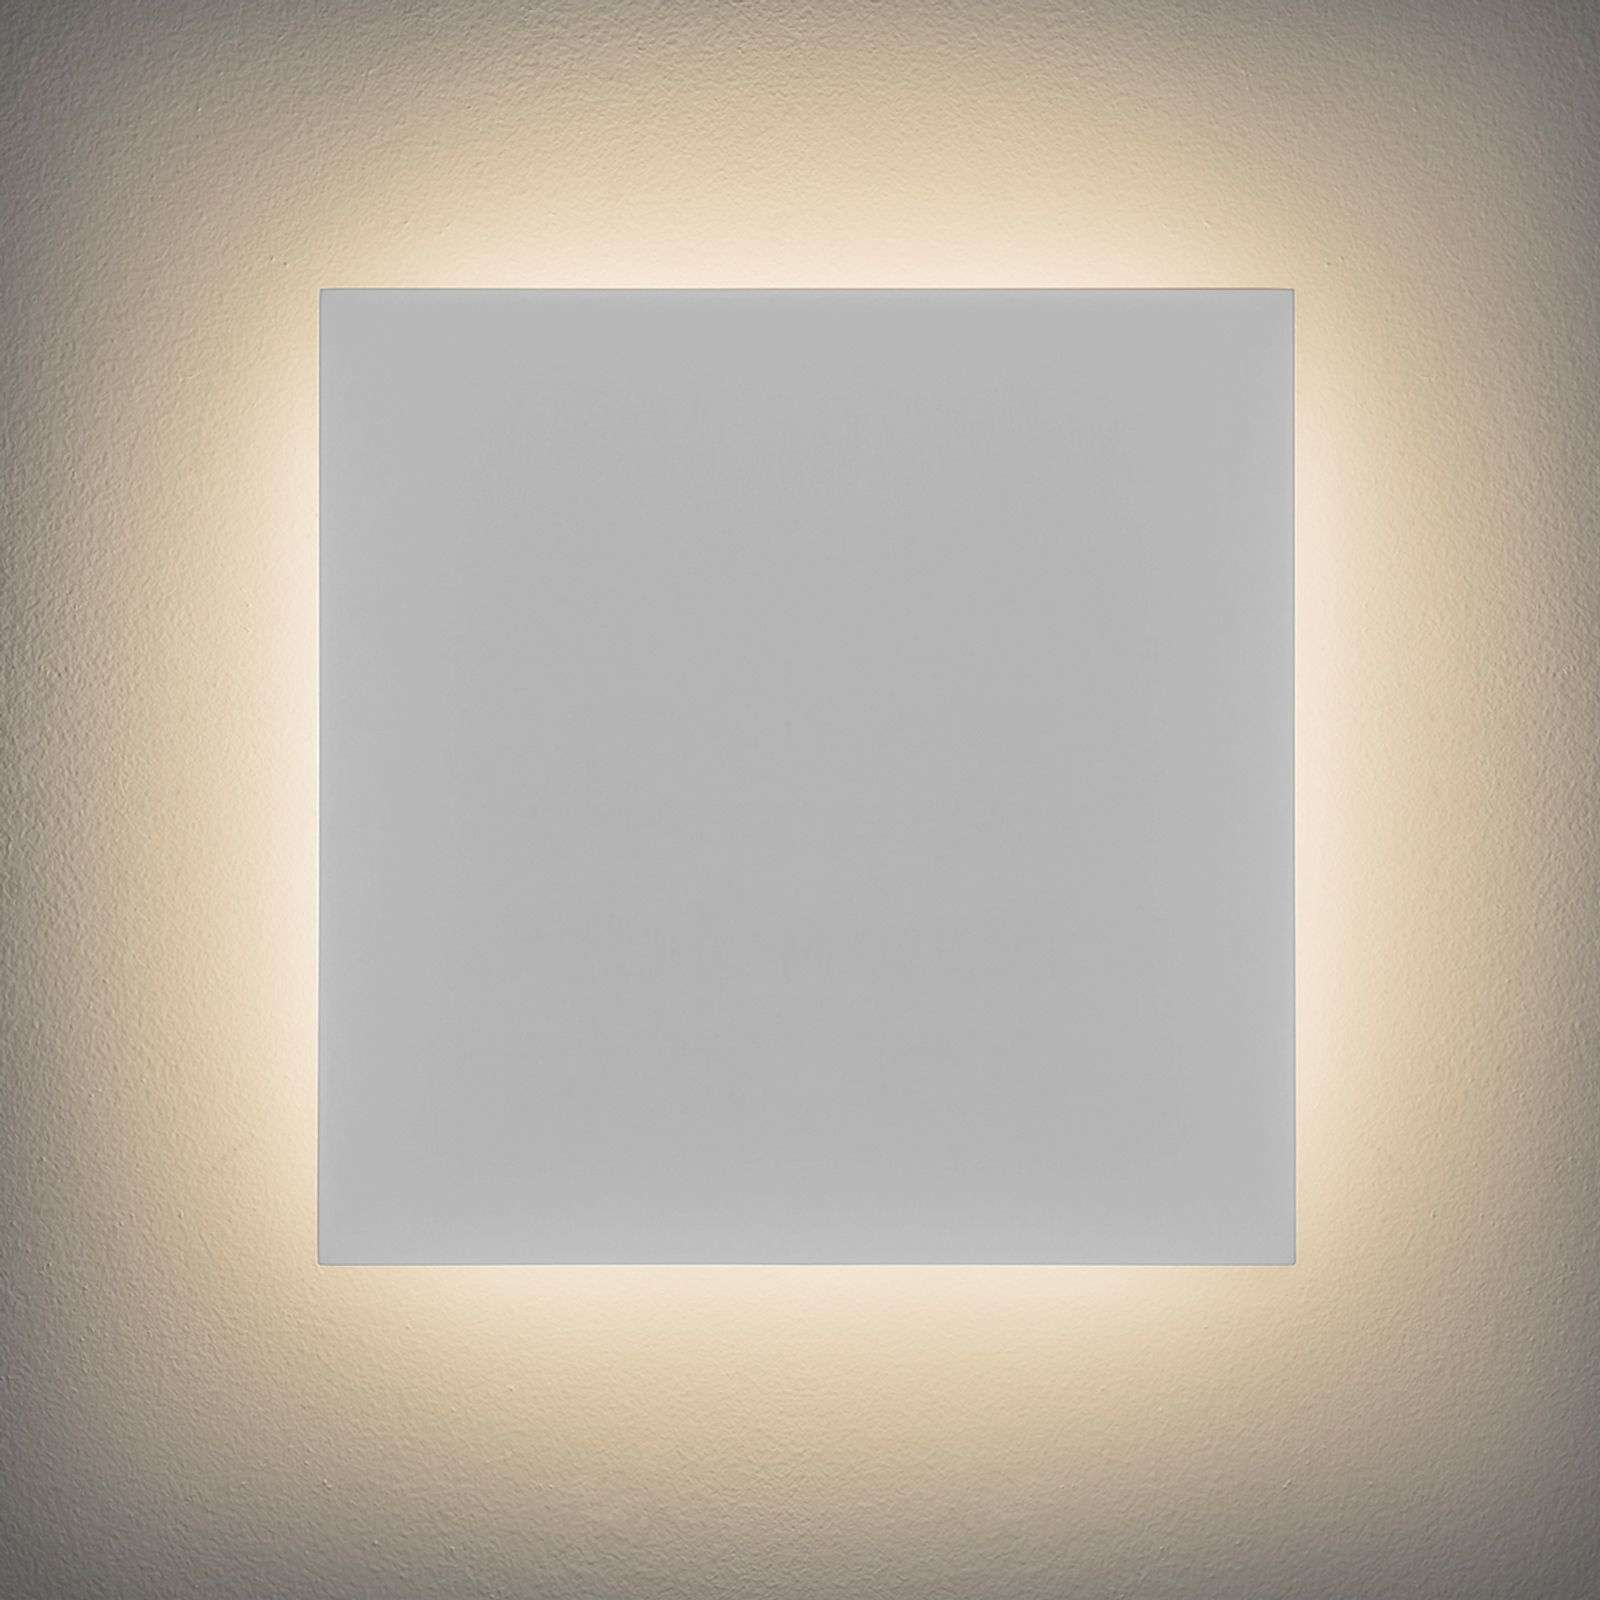 Lámpara de pared LED Eclipse Square 300